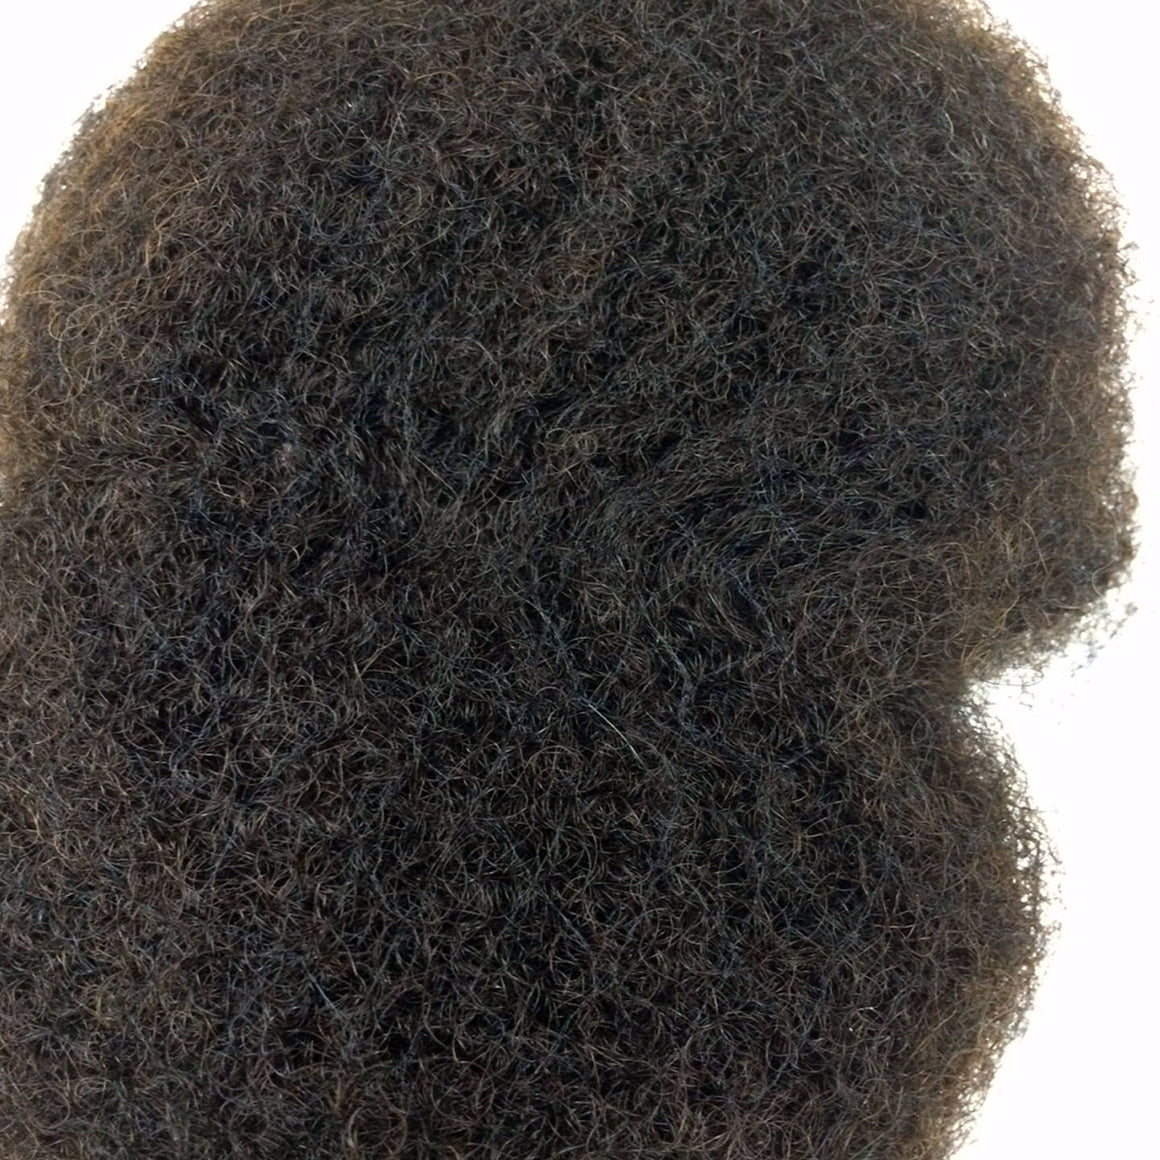 "CAPILLI HAIR - Afro Kinky Human Hair for Locs, Twists and Dread Hair 12"" - Hairesthetic"